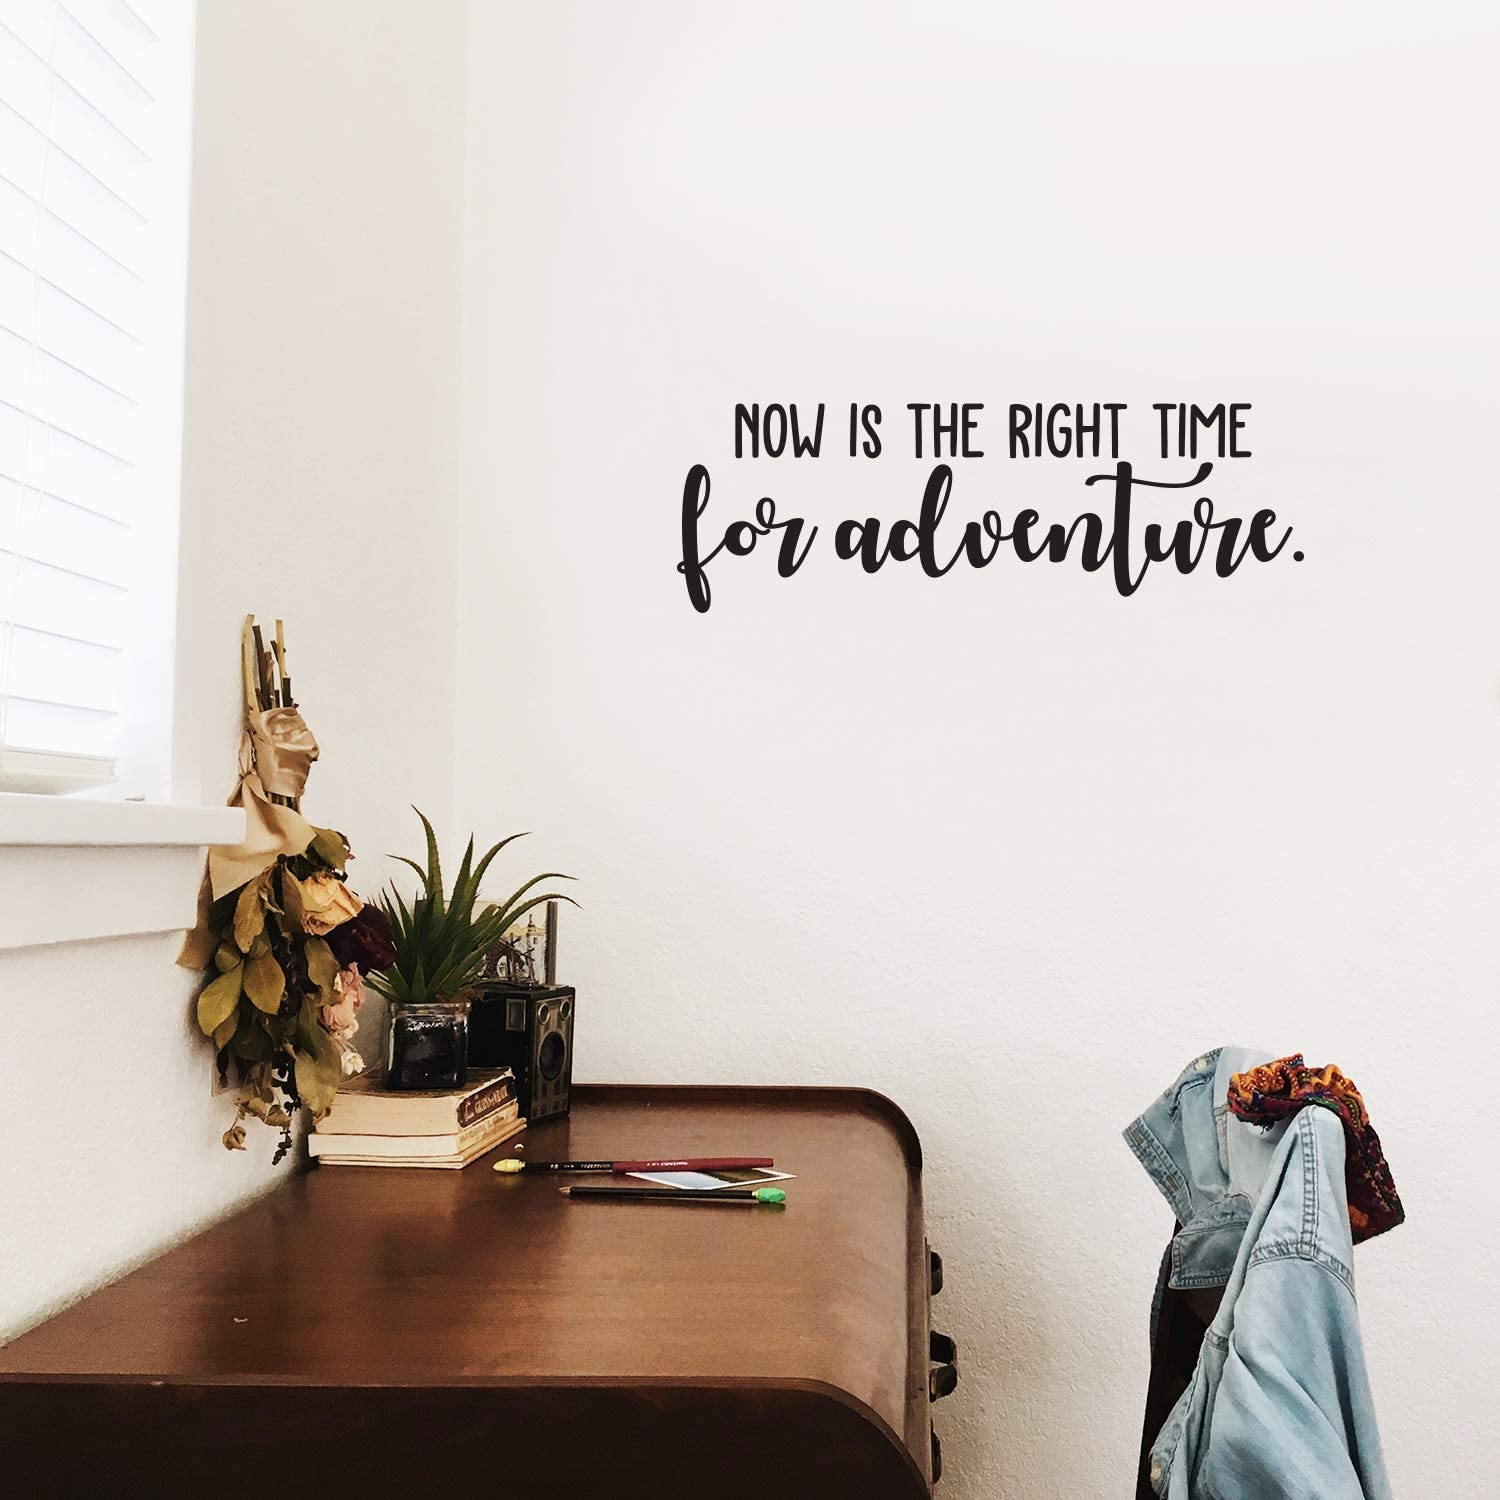 "Vinyl Wall Art Decal - Now is The Right Time for Adventure - 8"" x 25"" - Modern Cursive Traveler Vacations Quote for Home Bedroom Apartment Living Room Office Workplace Decoration Sticker"